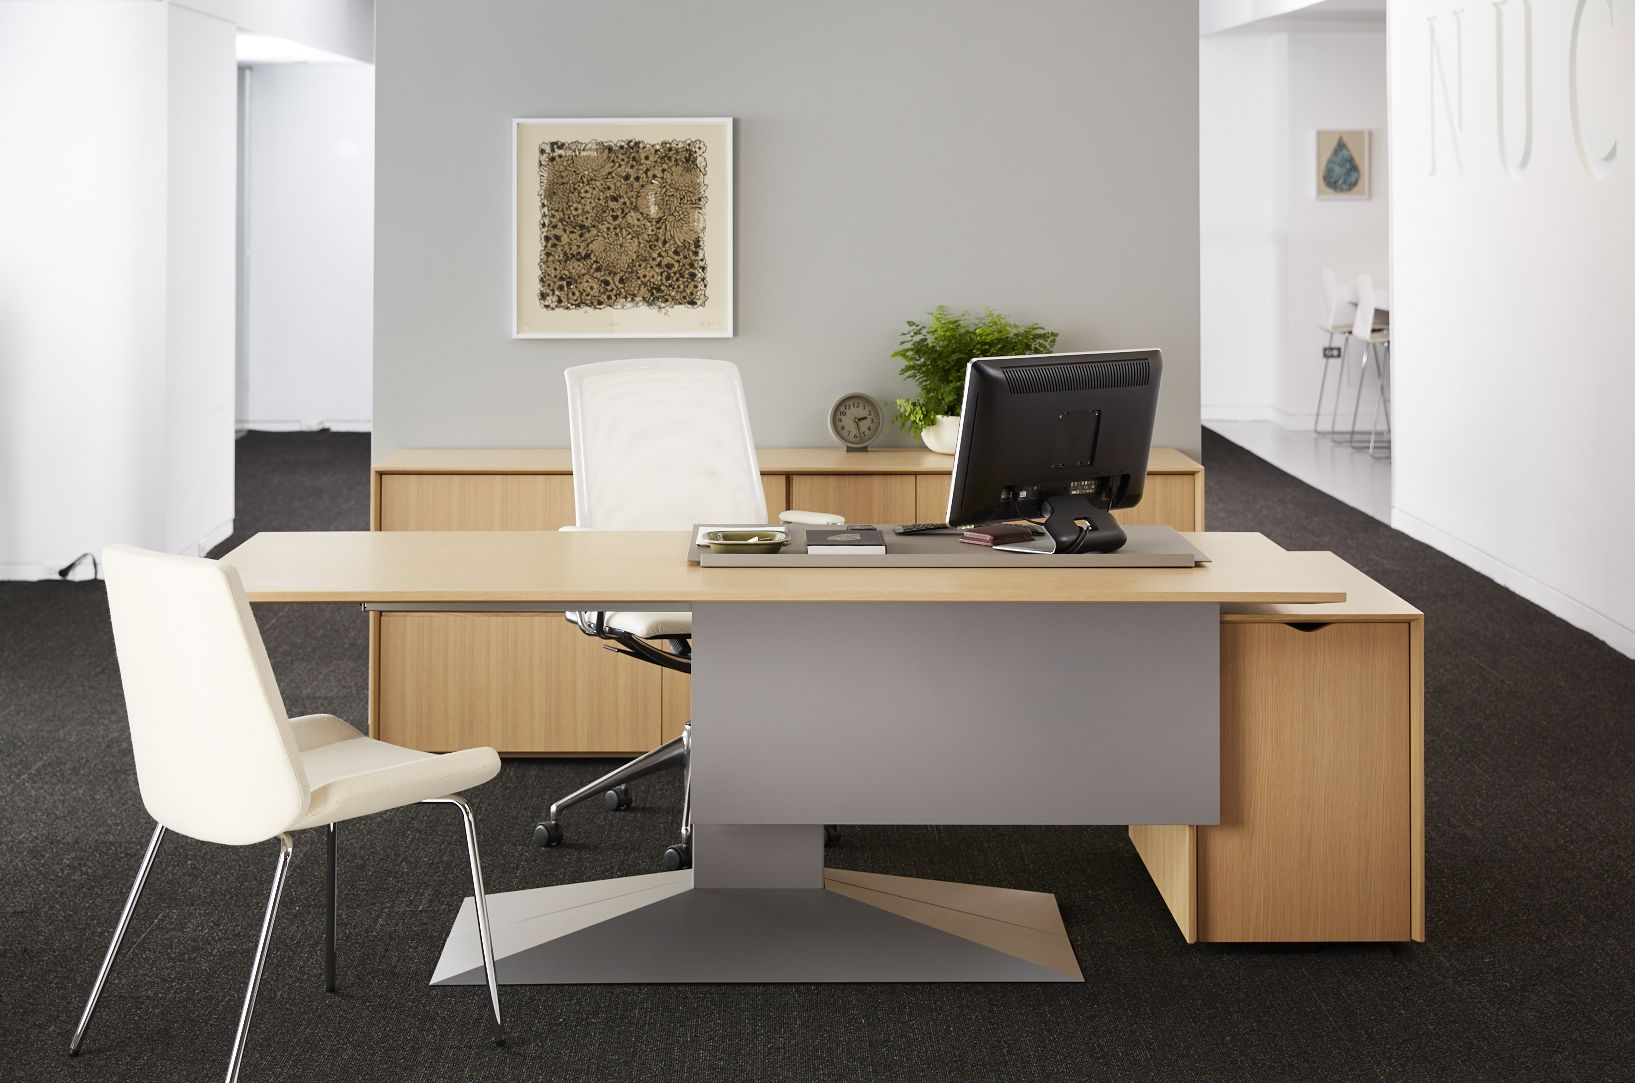 Did You Know Can Add Modesty Panels To The Front Of Your Modern Office Desk A Panel Be Full Width Or Partial With Length Suit